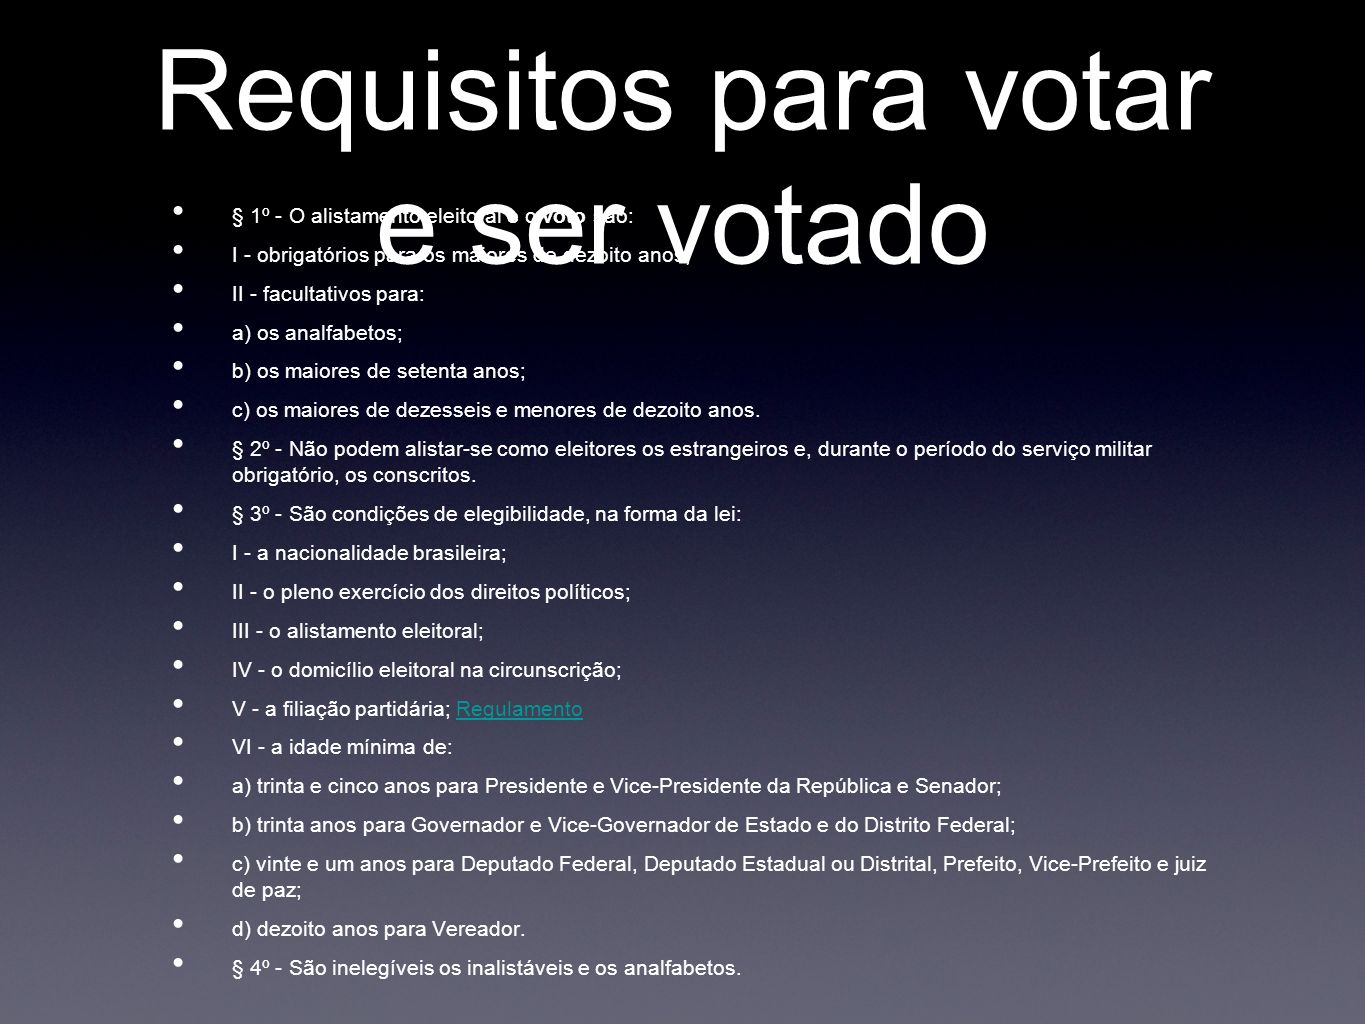 Requisitos para votar e ser votado